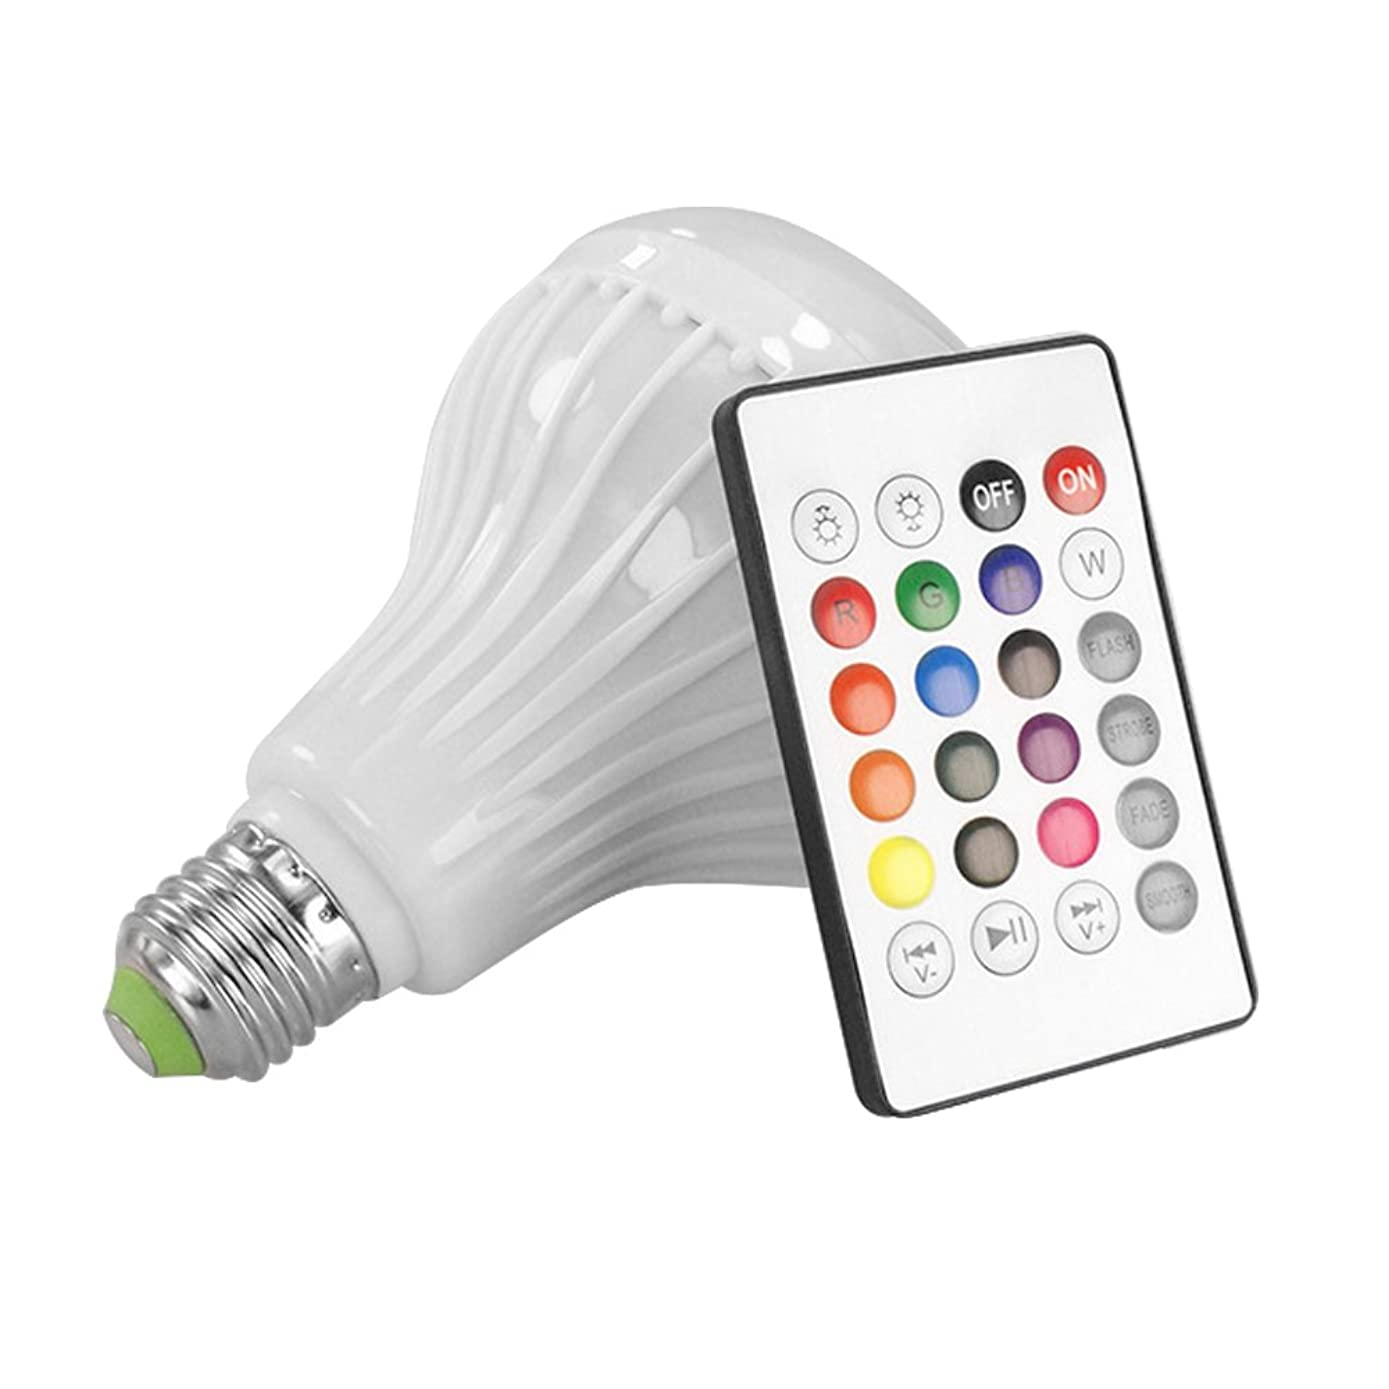 LED Blub Light Bluetooth Speaker ALLOMN LED Music Bulb E27 12W LED RGB Smart Bulb with Remote Control